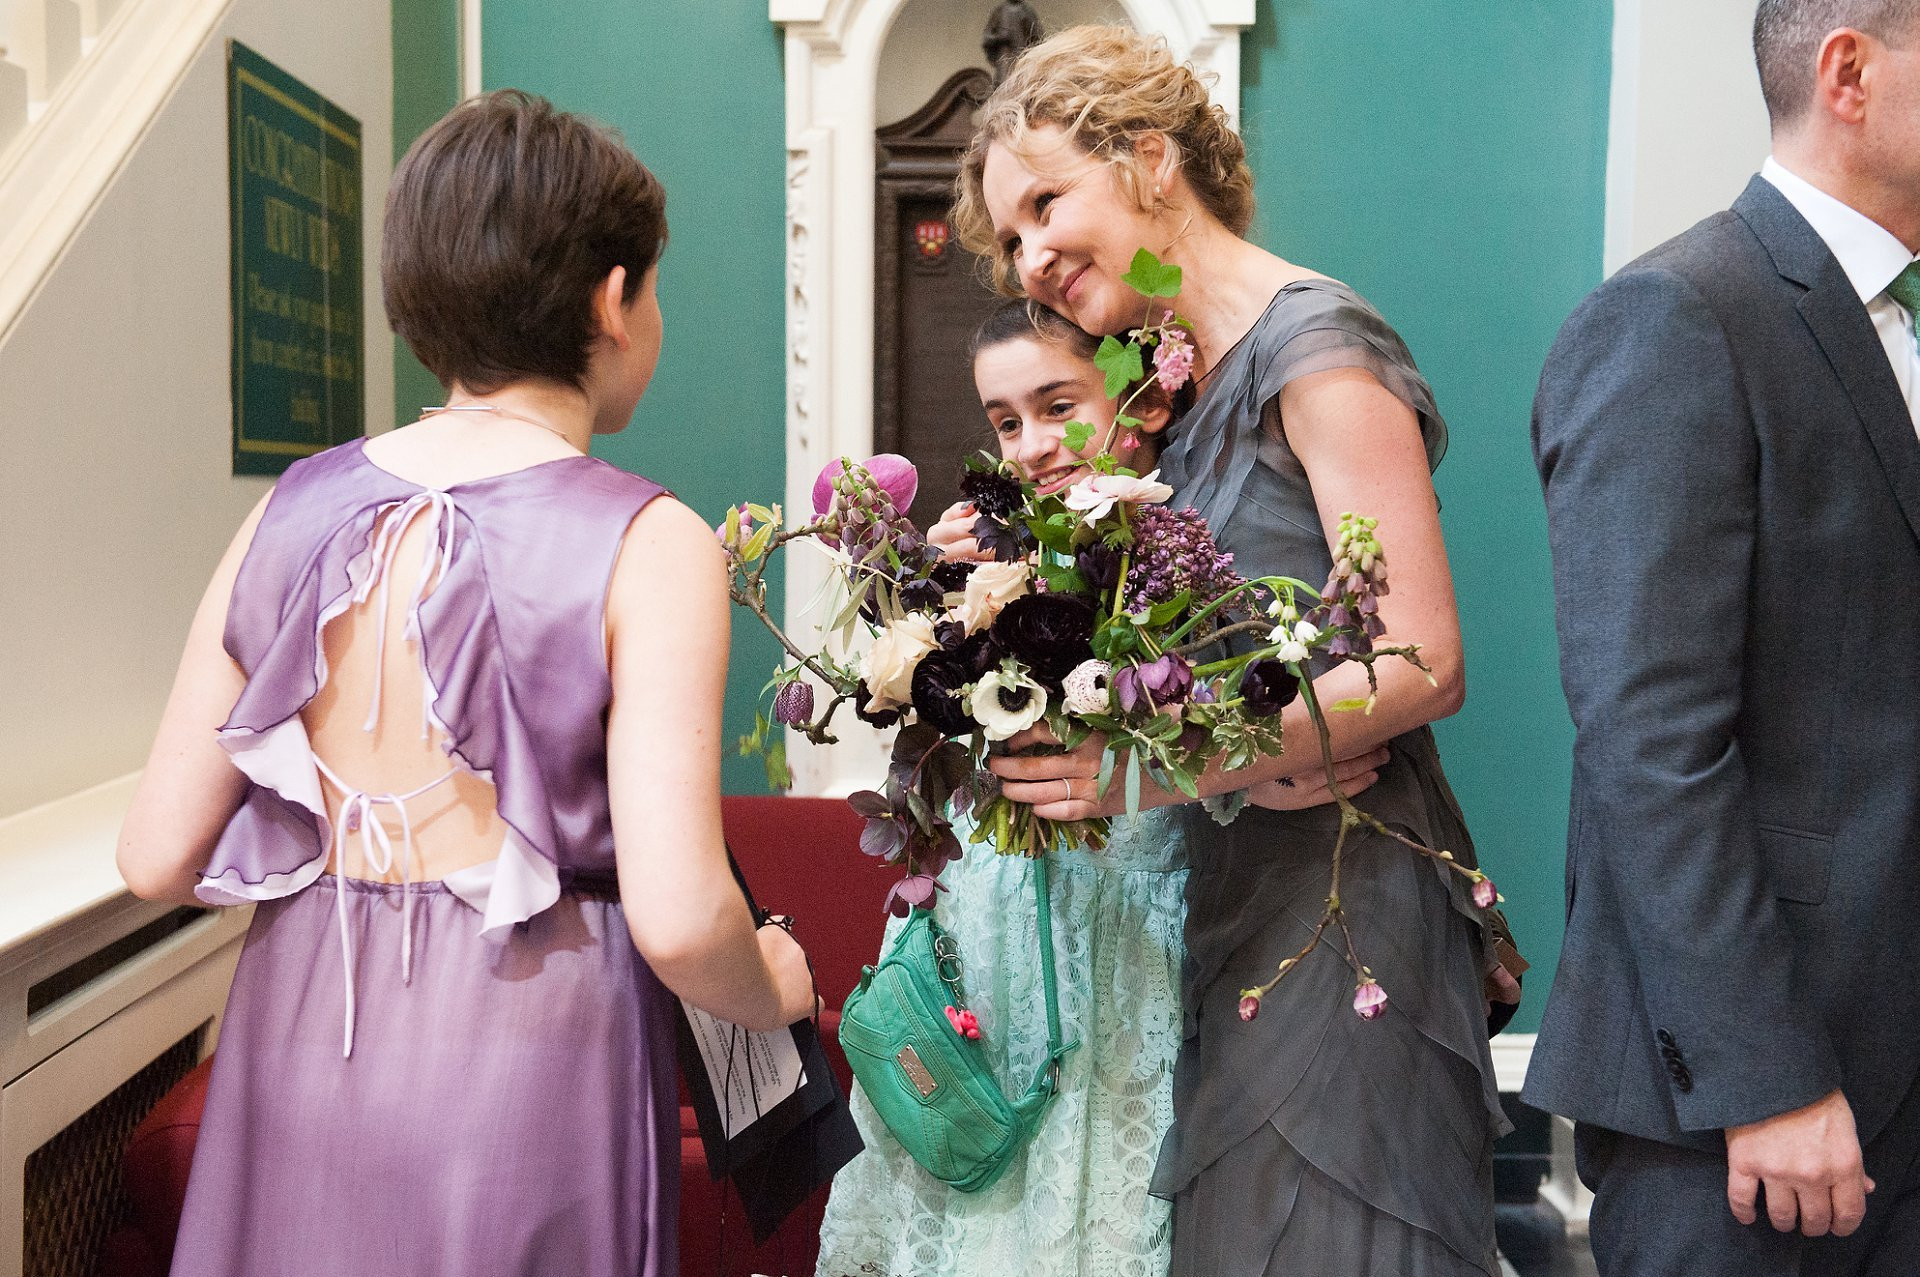 Bride celebrates her wedding at Woolwich Town Hall